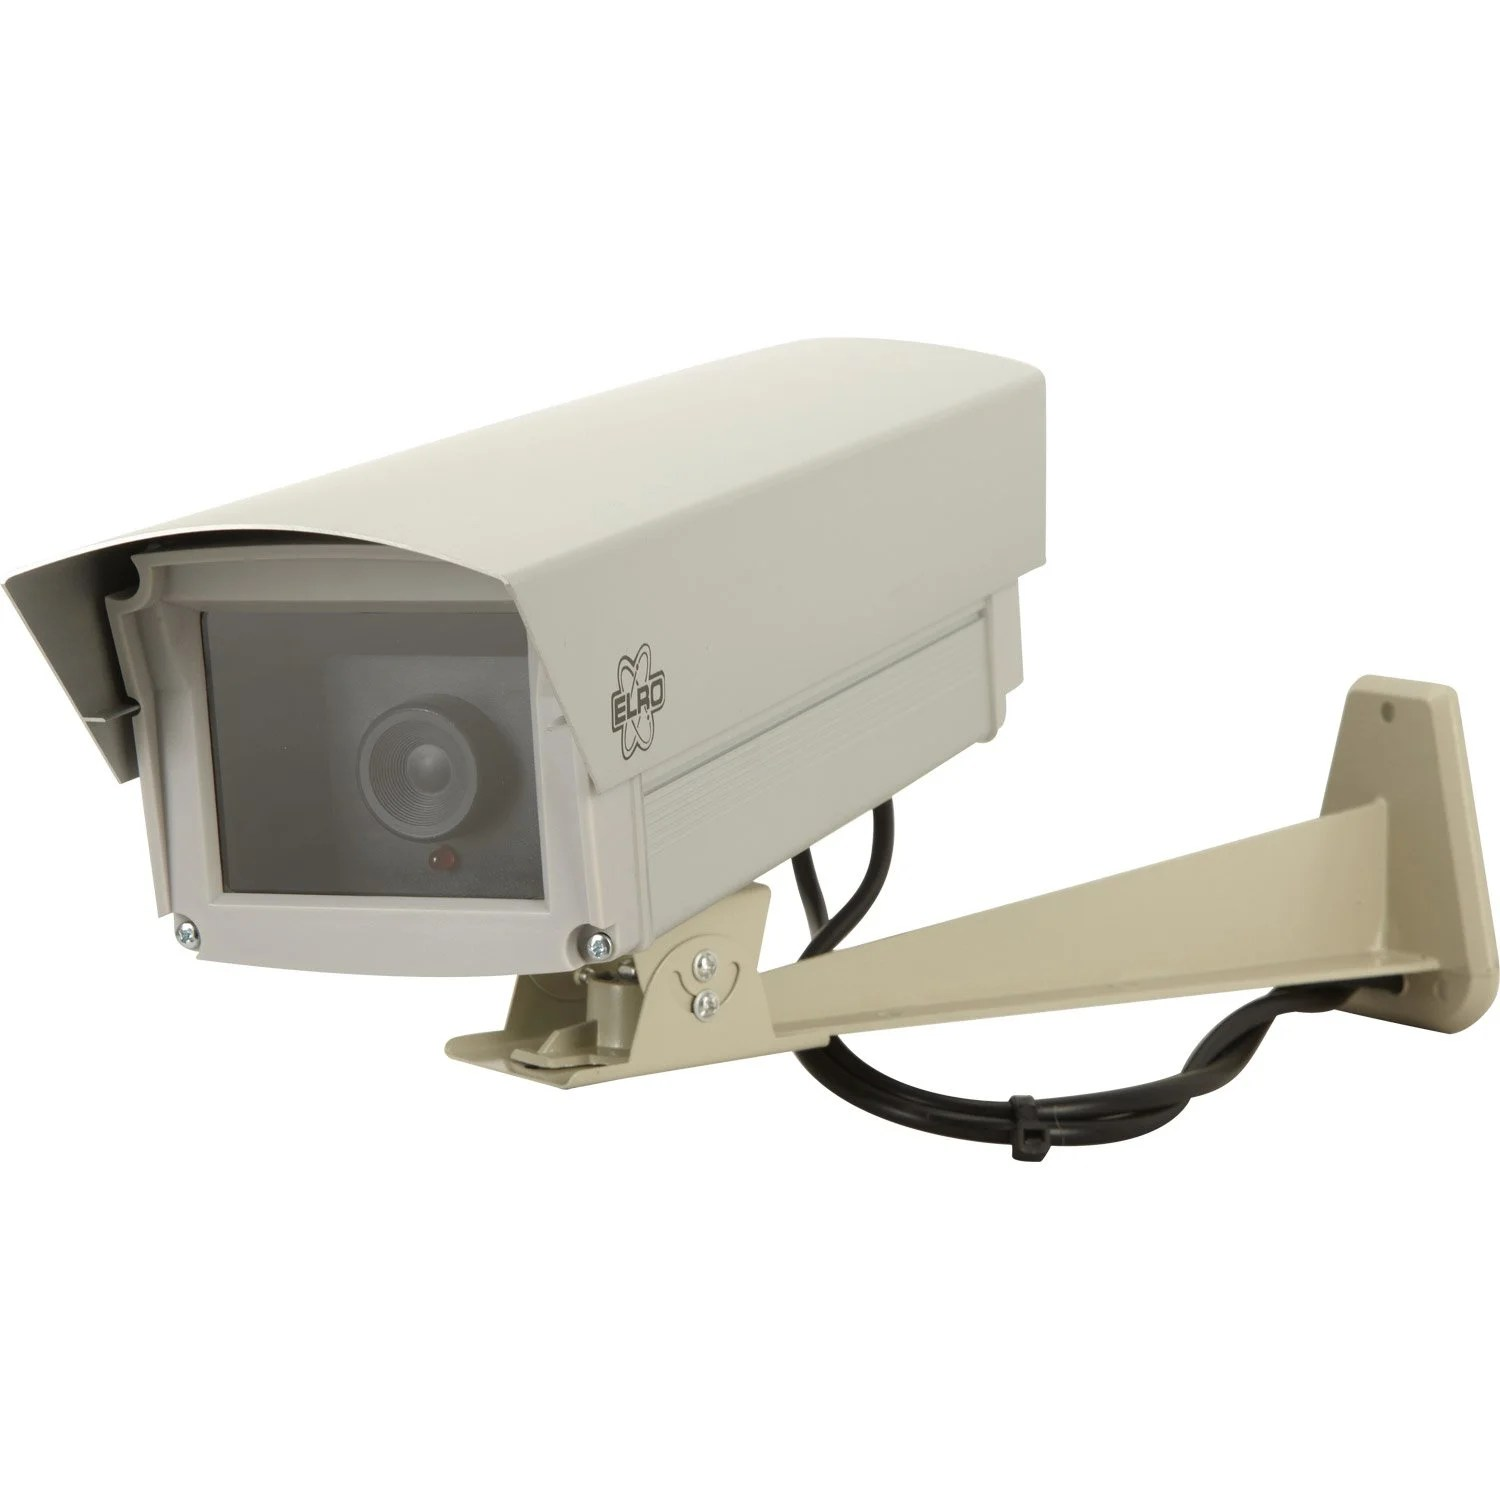 Kit Camera De Surveillance Exterieur Leroy Merlin Camera De Surveillance Factice Wikilia Fr